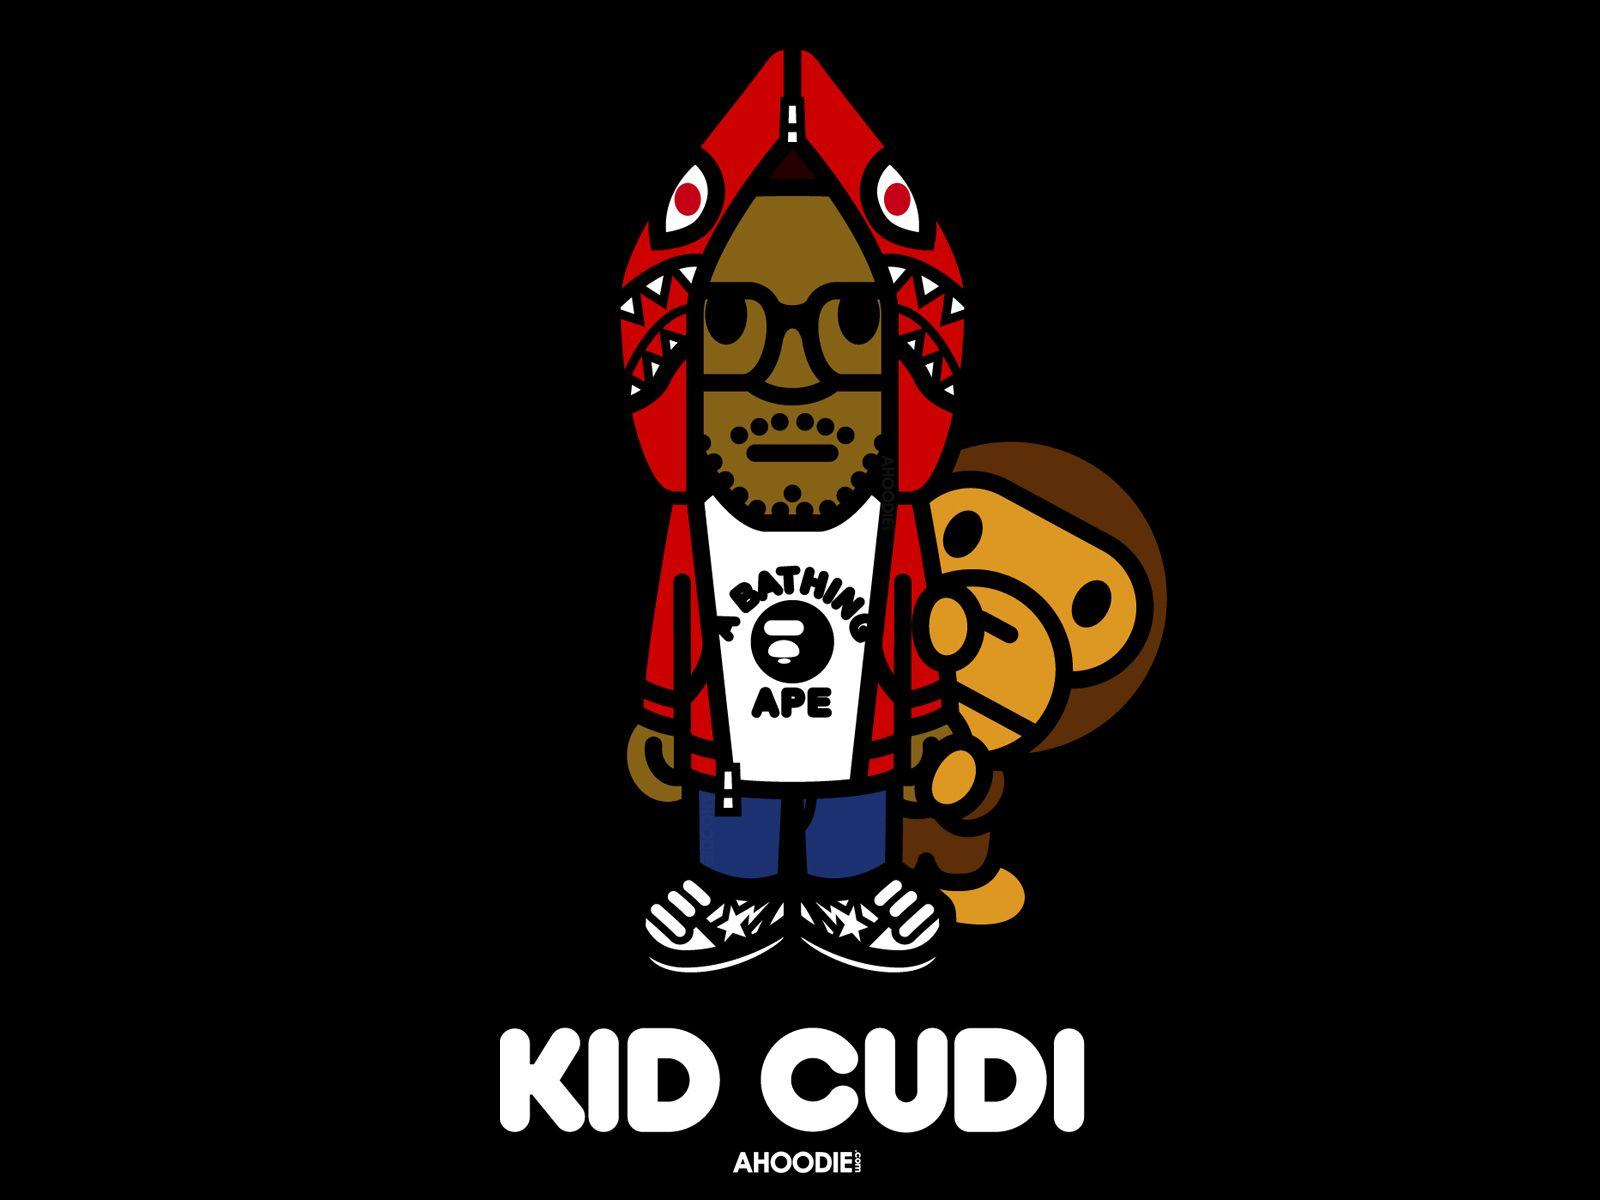 Lil Yachty Wallpaper Iphone Kid Cudi Wallpapers 1080p Wallpaper Cave